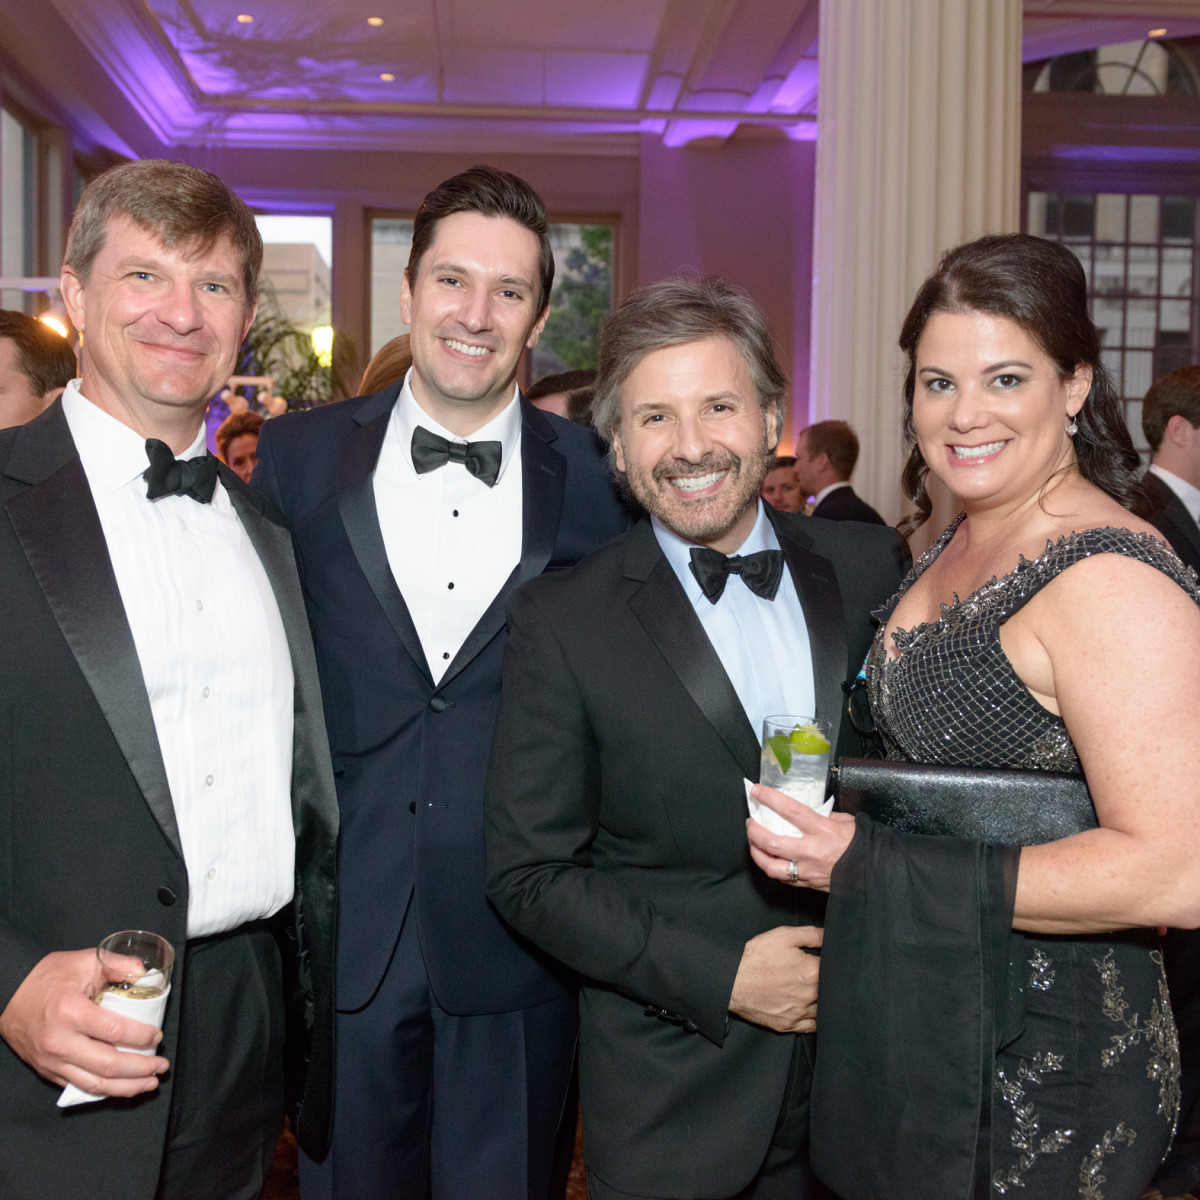 SPA, Gala April 20i16, Frank Vandiver, Jeff Kuffler, Ernie Manuse and Courtney Vandiver